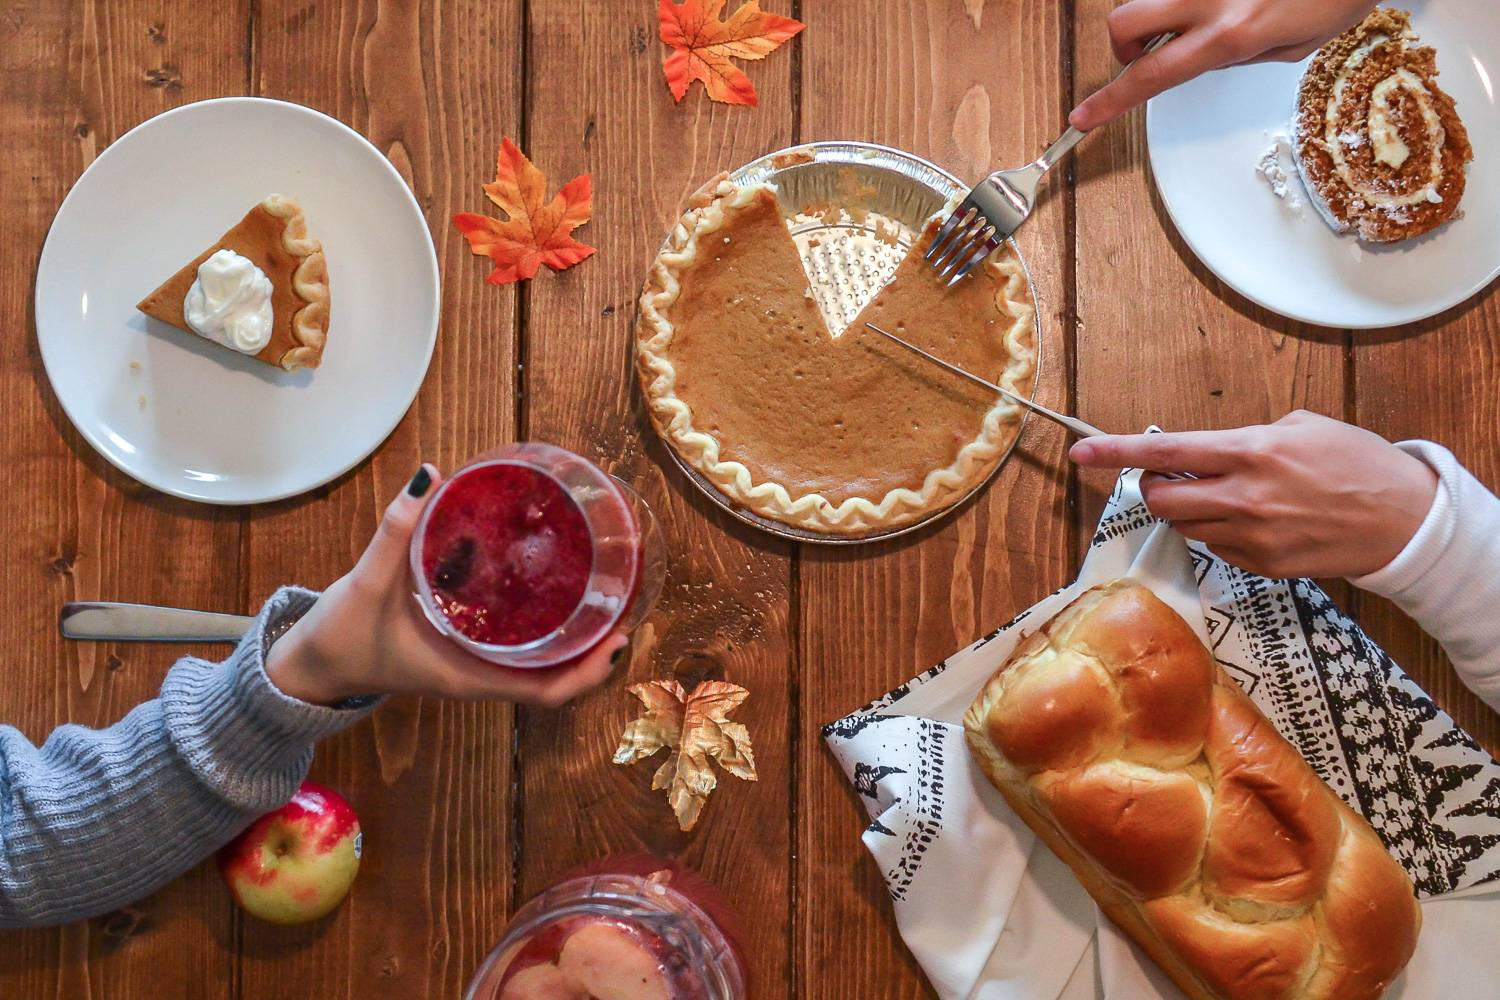 Image of overhead view of a dining table filled with pie, mulled wine, challah bread, and apples.